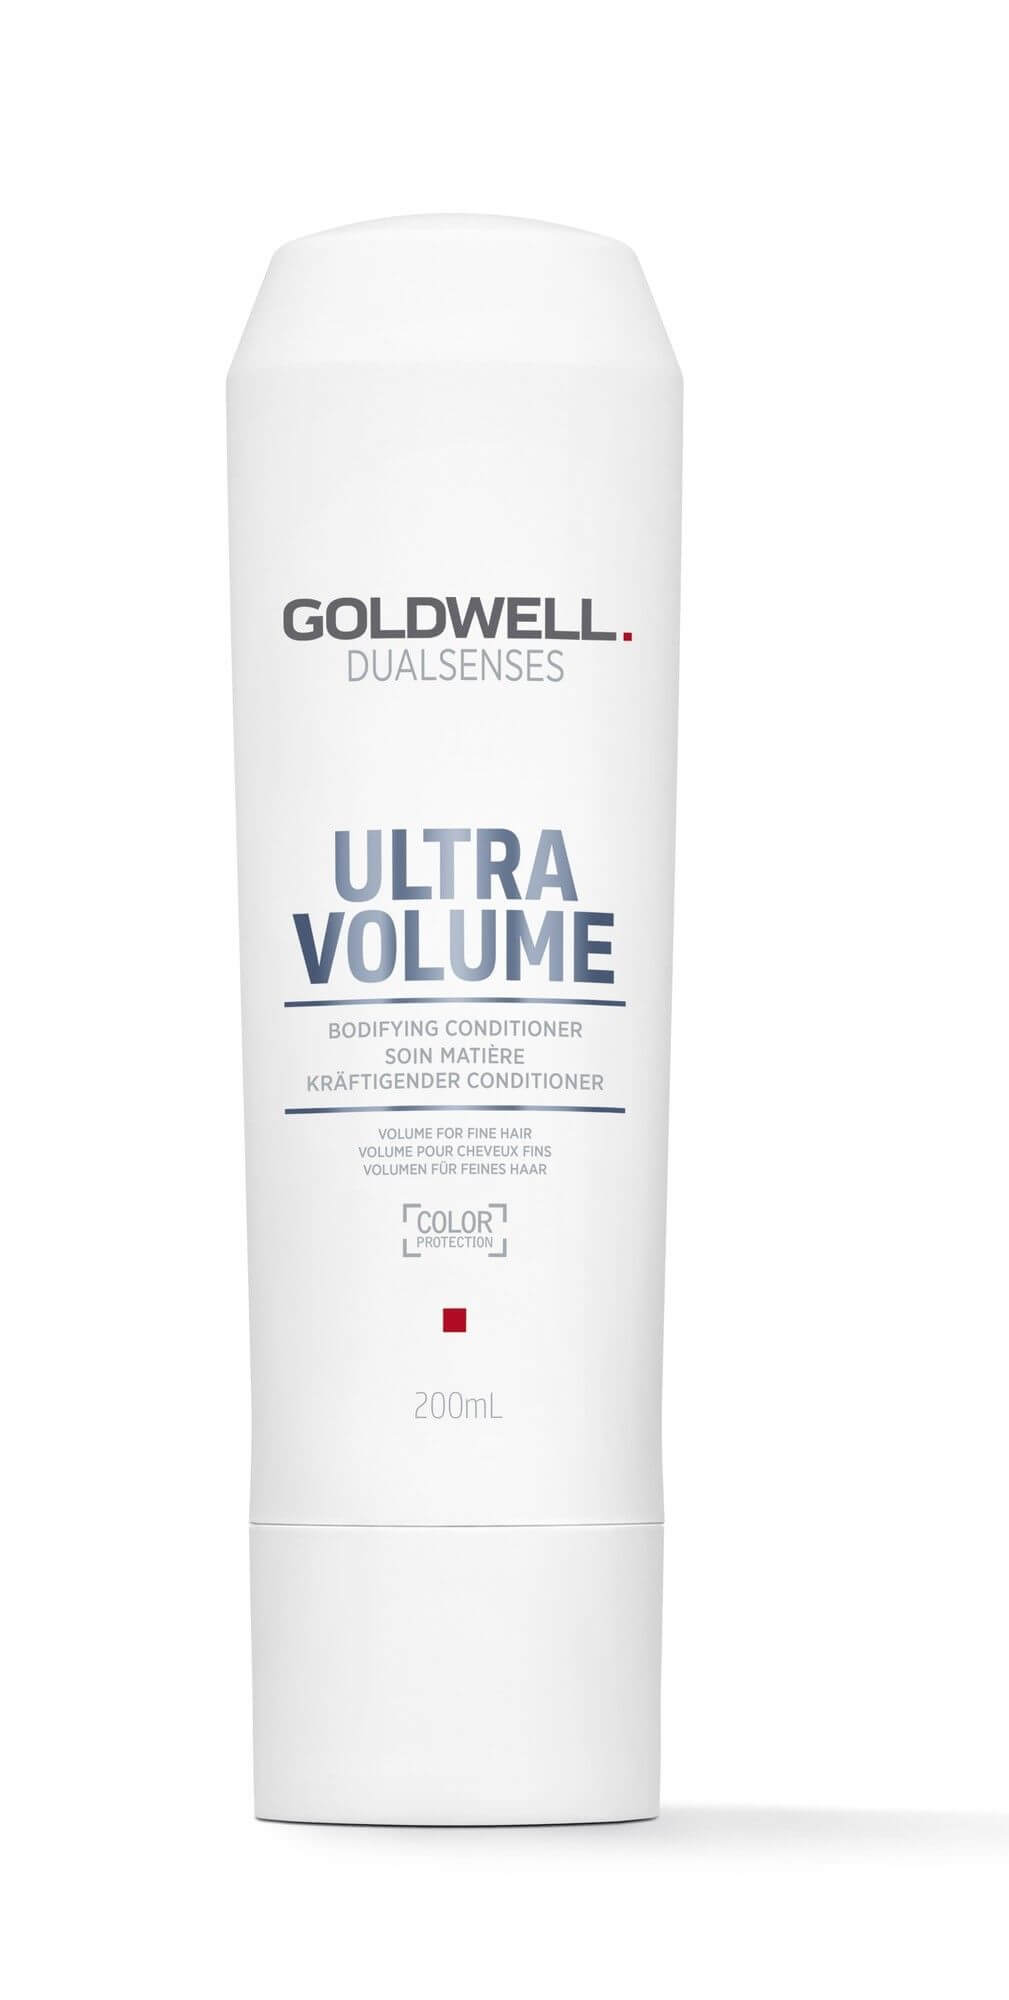 Dualsenses Ultra Volume Bodifying Conditioner.